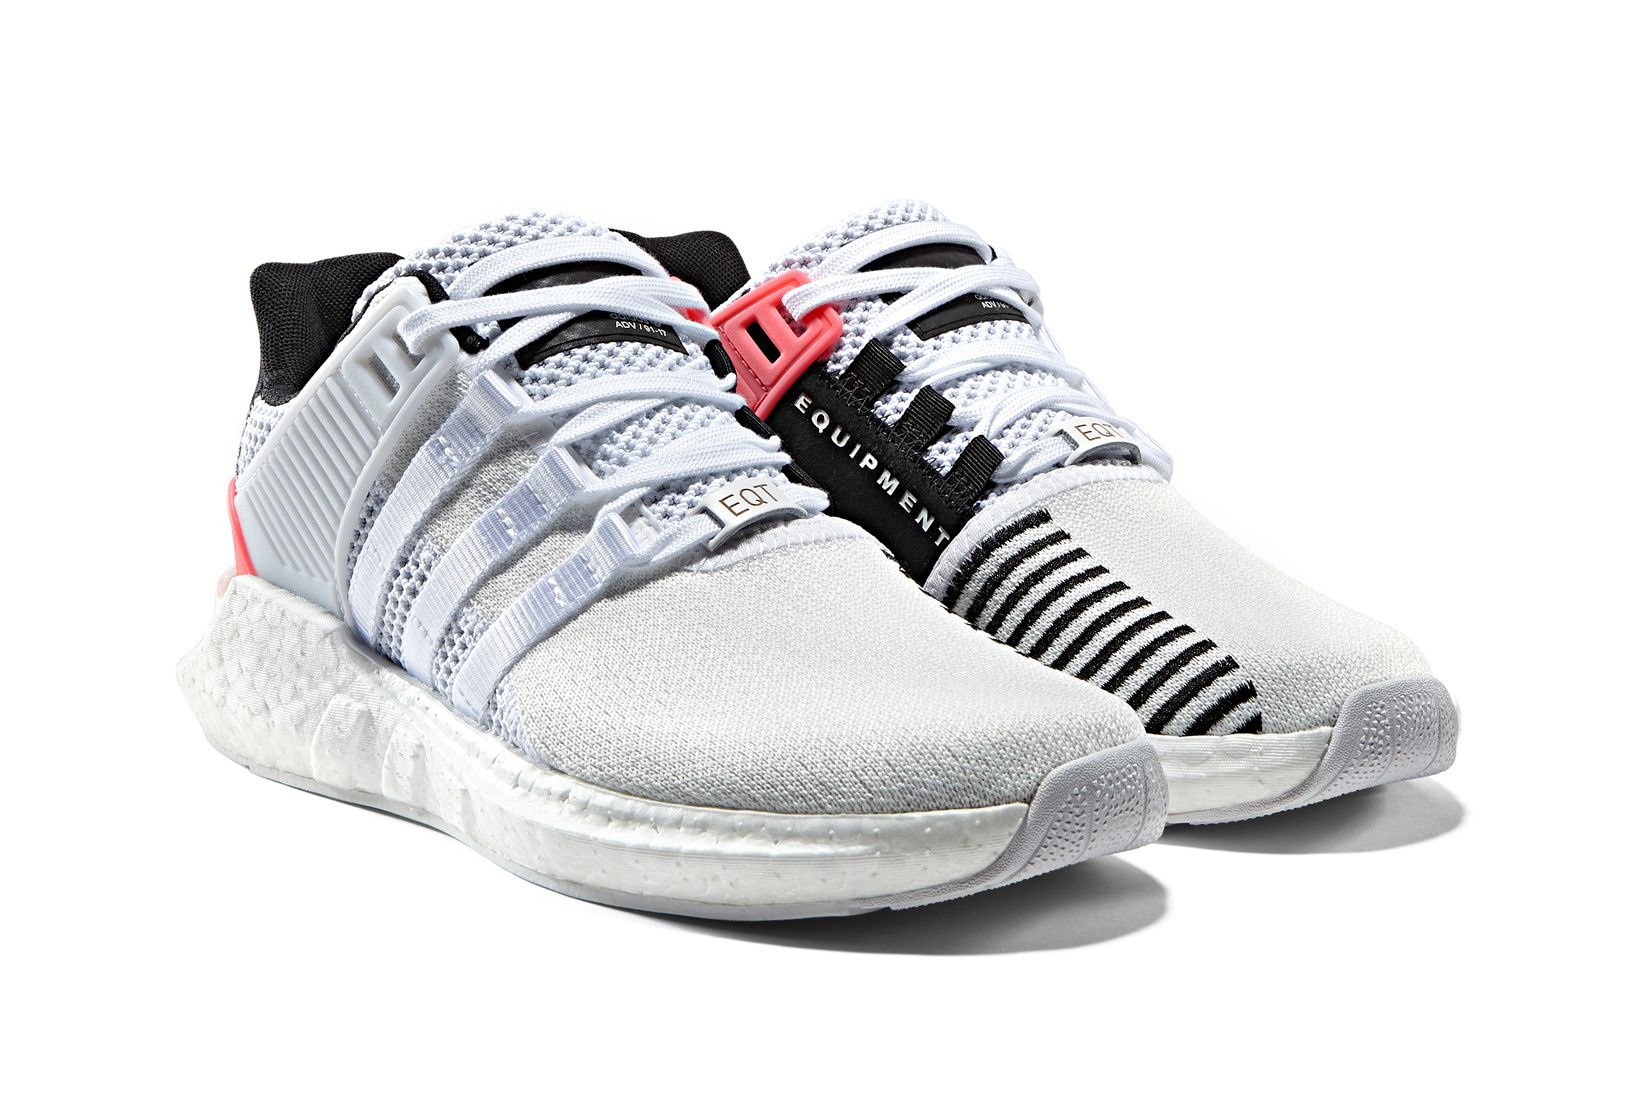 The New adidas Originals EQT Support 93/17 Gets a Dominating White Makeup